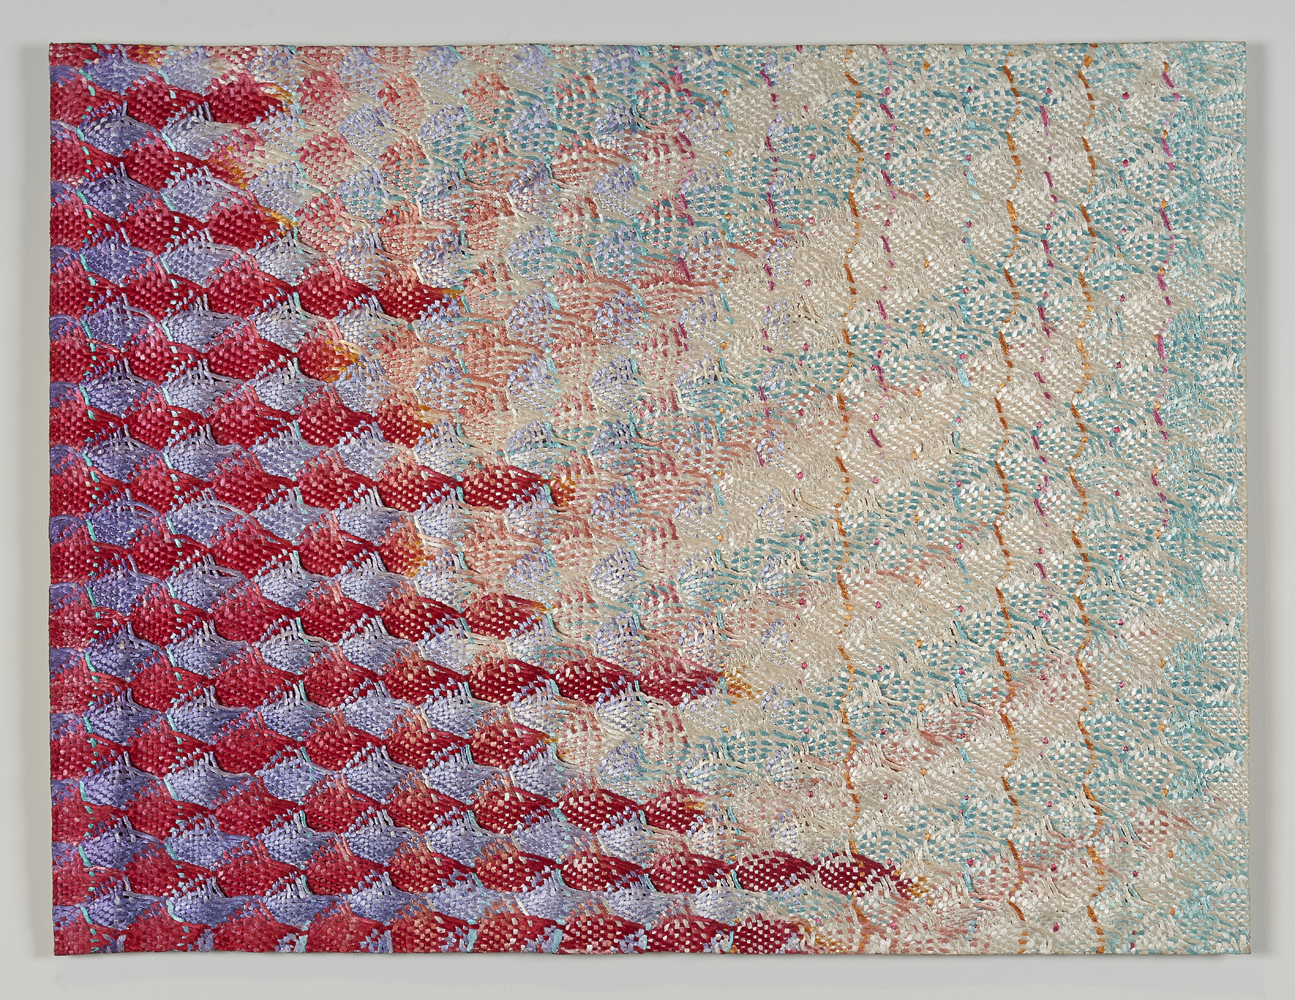 hand-painted weaving with pinks and blues at a gallery exhibition